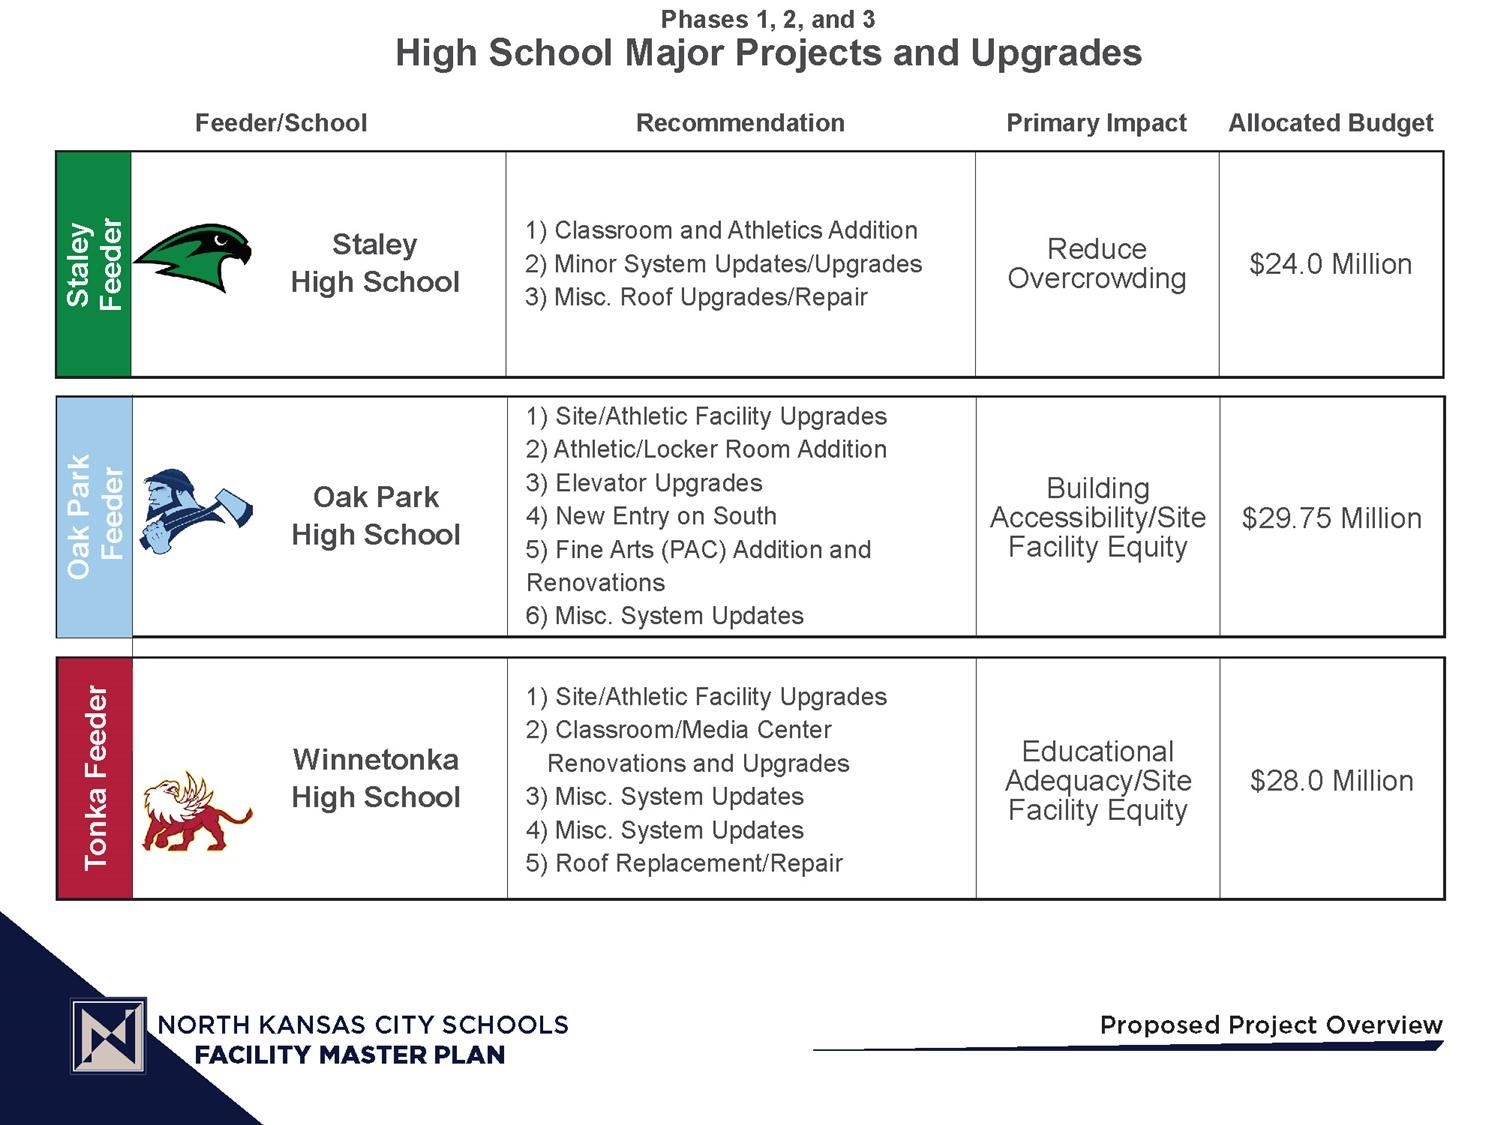 Graphic Image of Major High School Projects